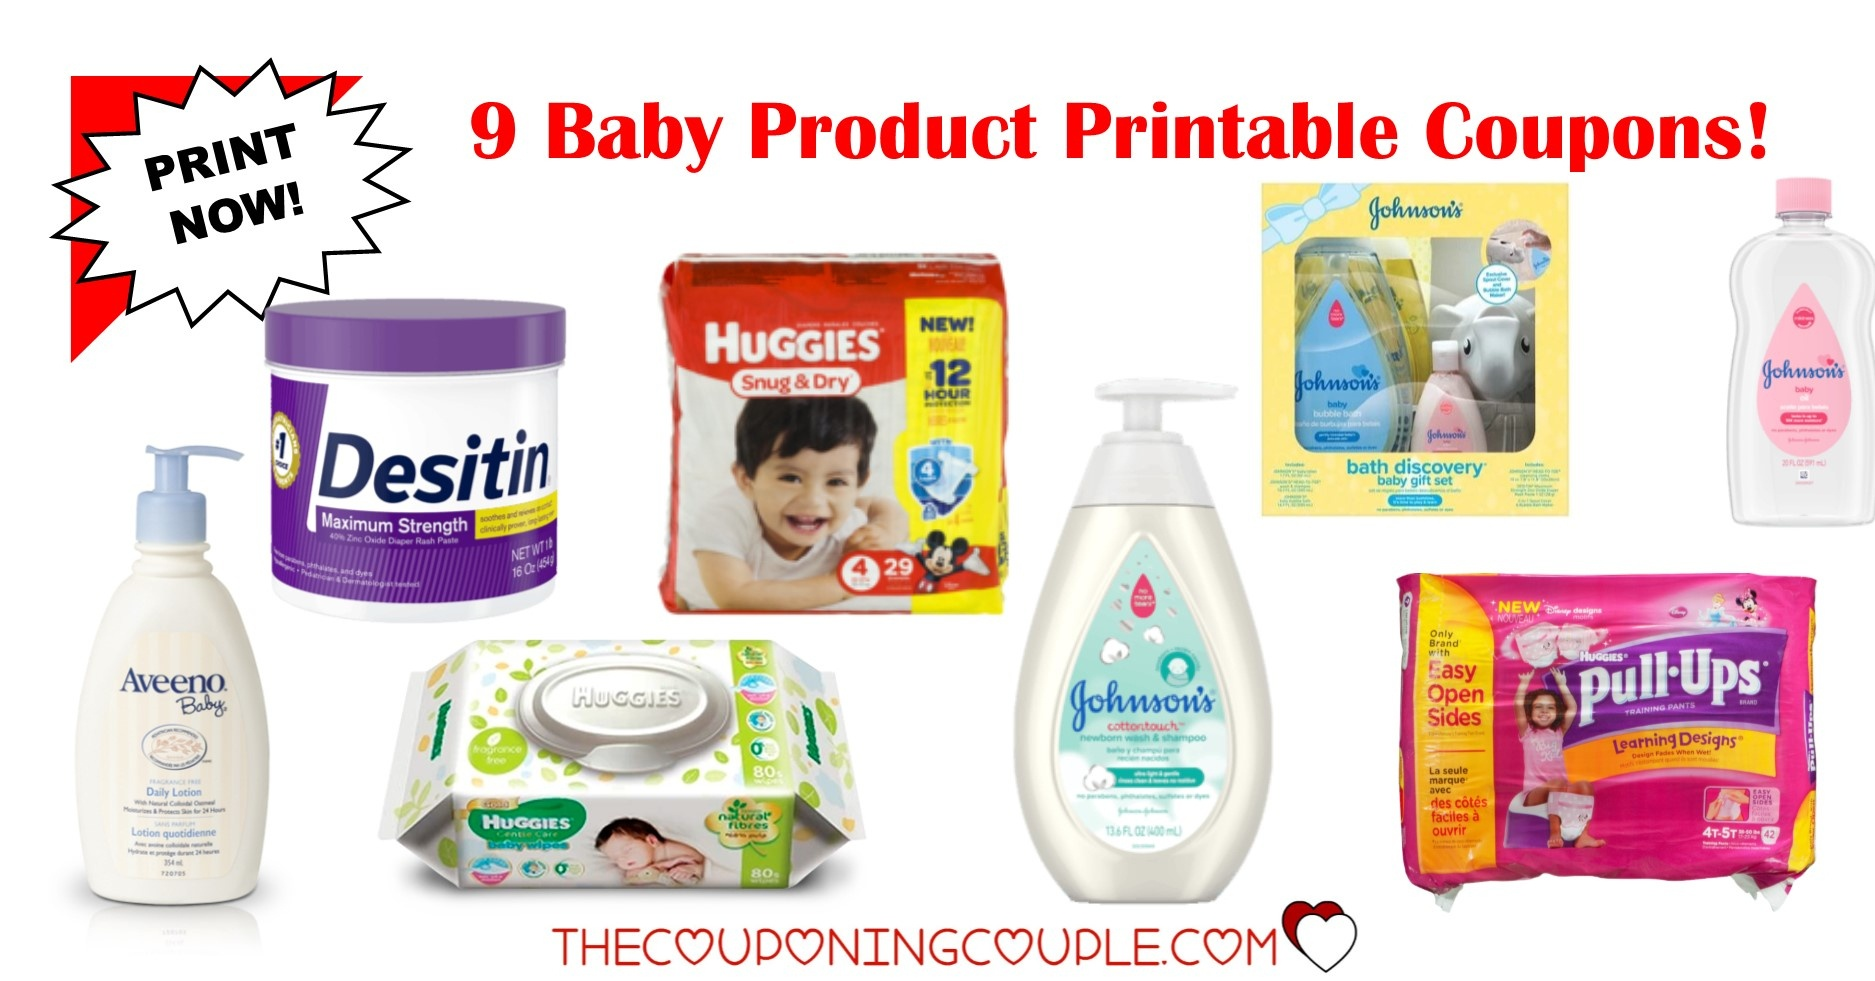 9 Baby Product Printable Coupons ~ Over $15.50 In Savings! - Free Printable Coupons For Baby Diapers